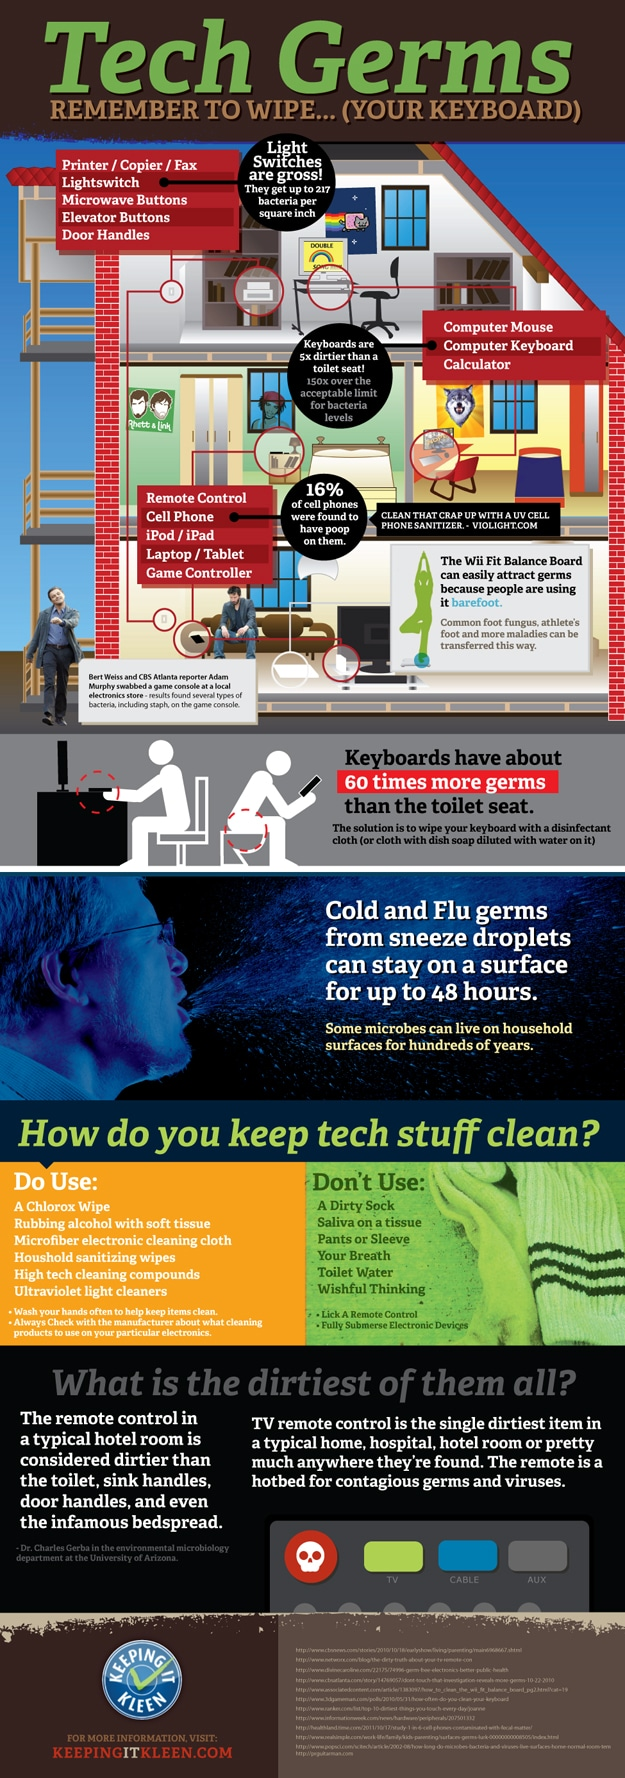 Tech Germs: Our Gadgets Are Disgustingly Dirty [Infographic]